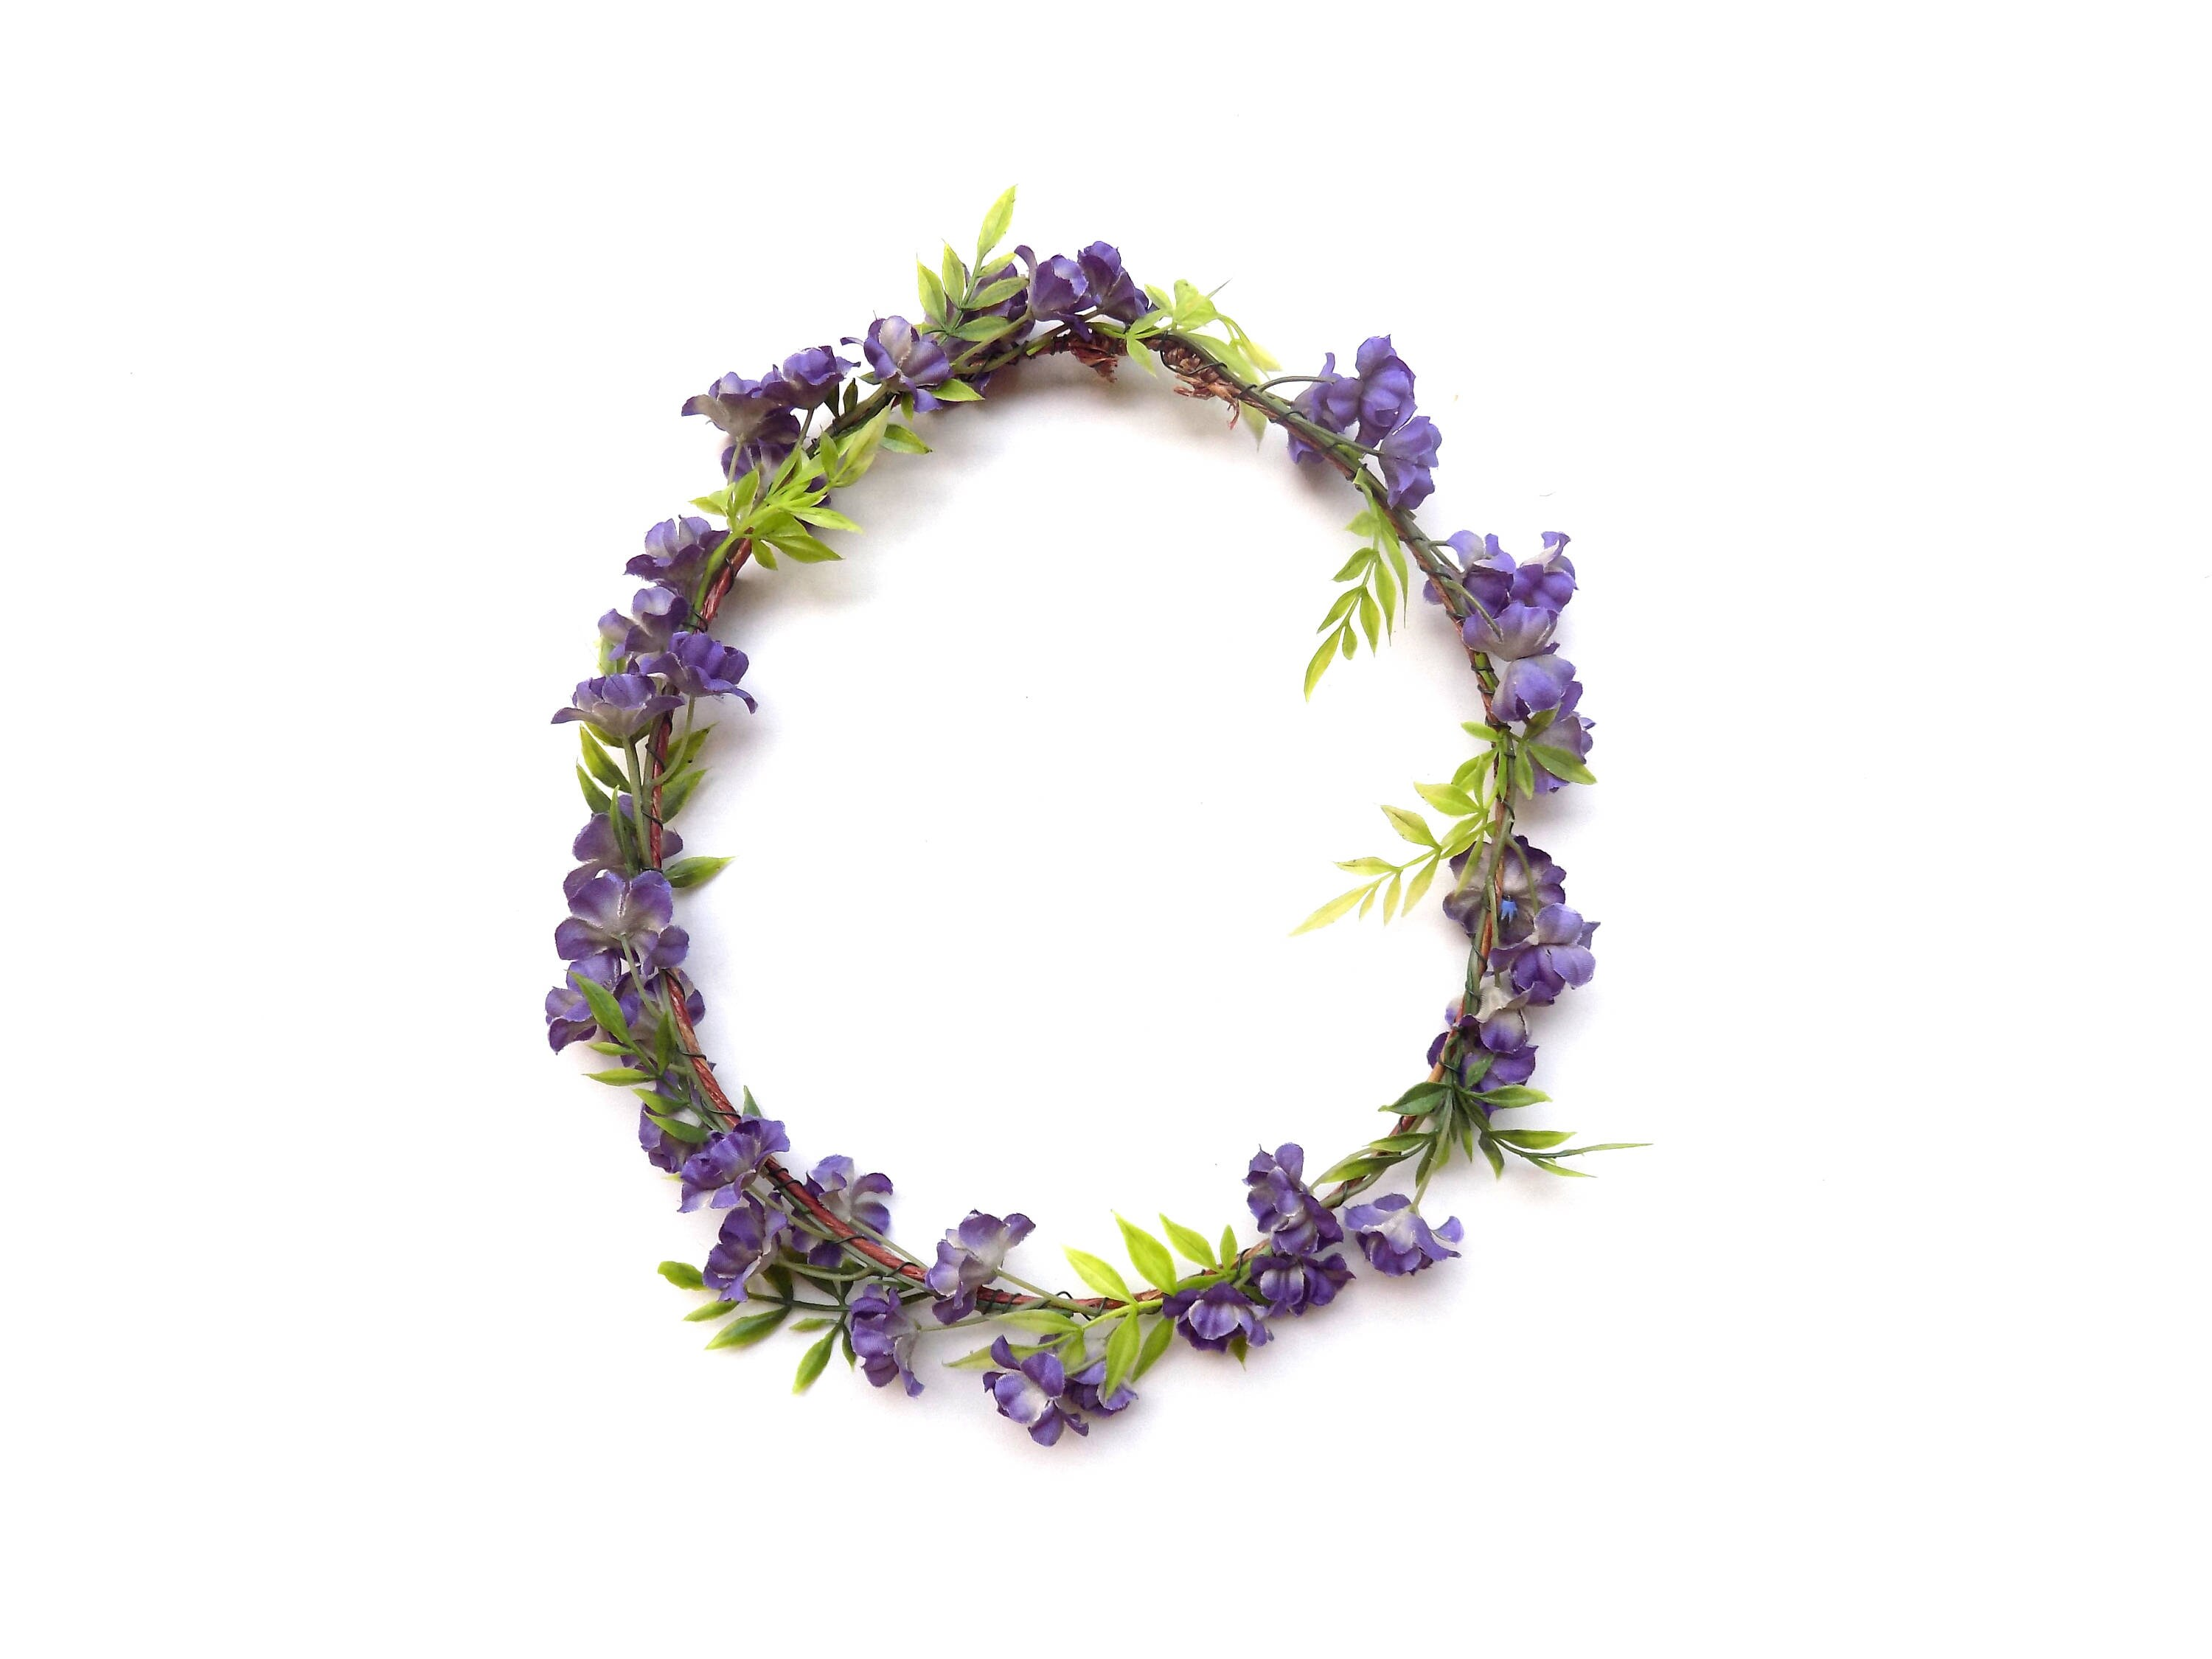 Woodland Crown With Dark Purple Flowers Realistic Flower Crown With